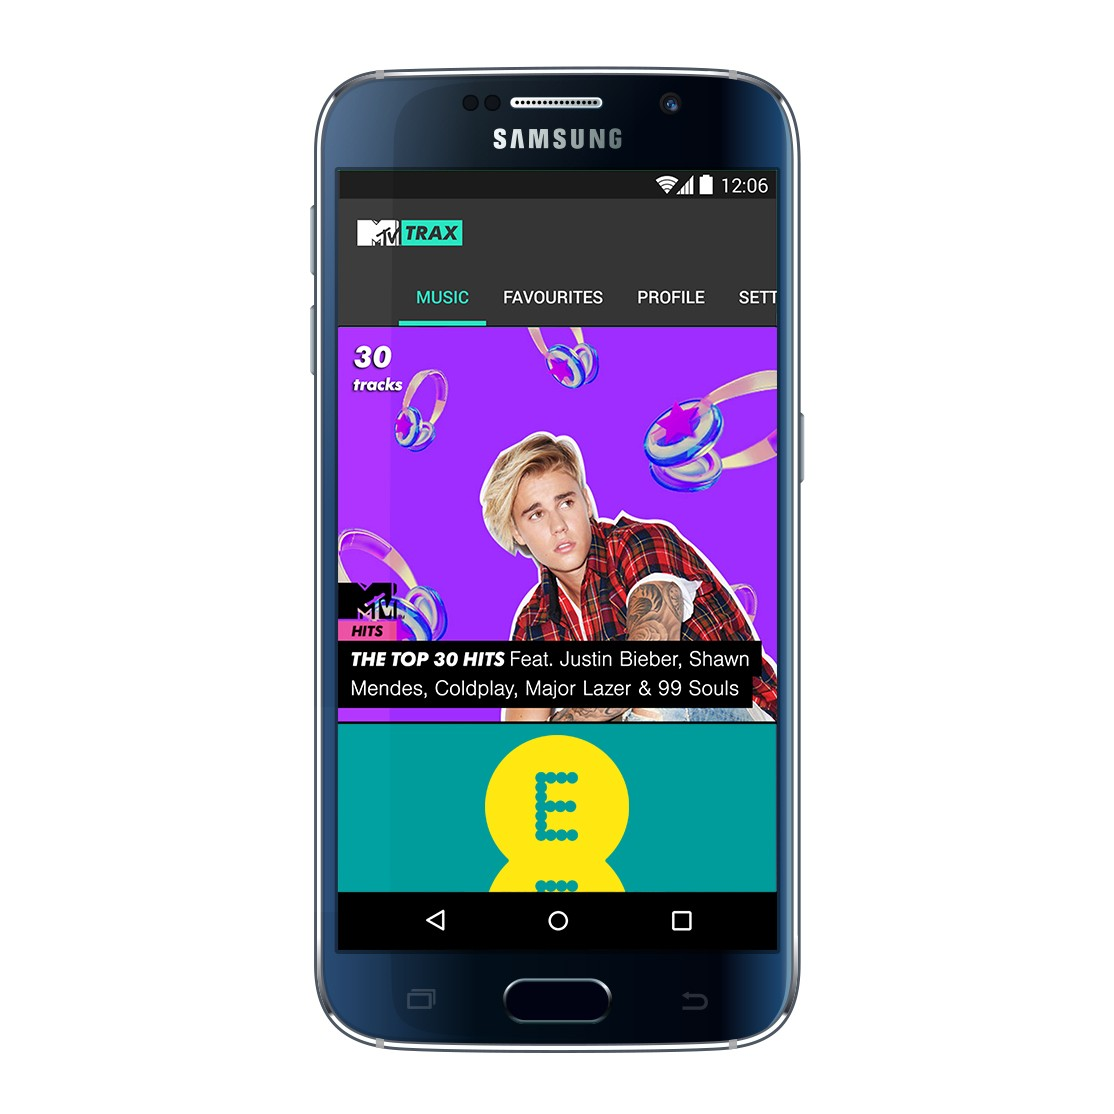 Samsung Galaxy G6 with MTV TRAX